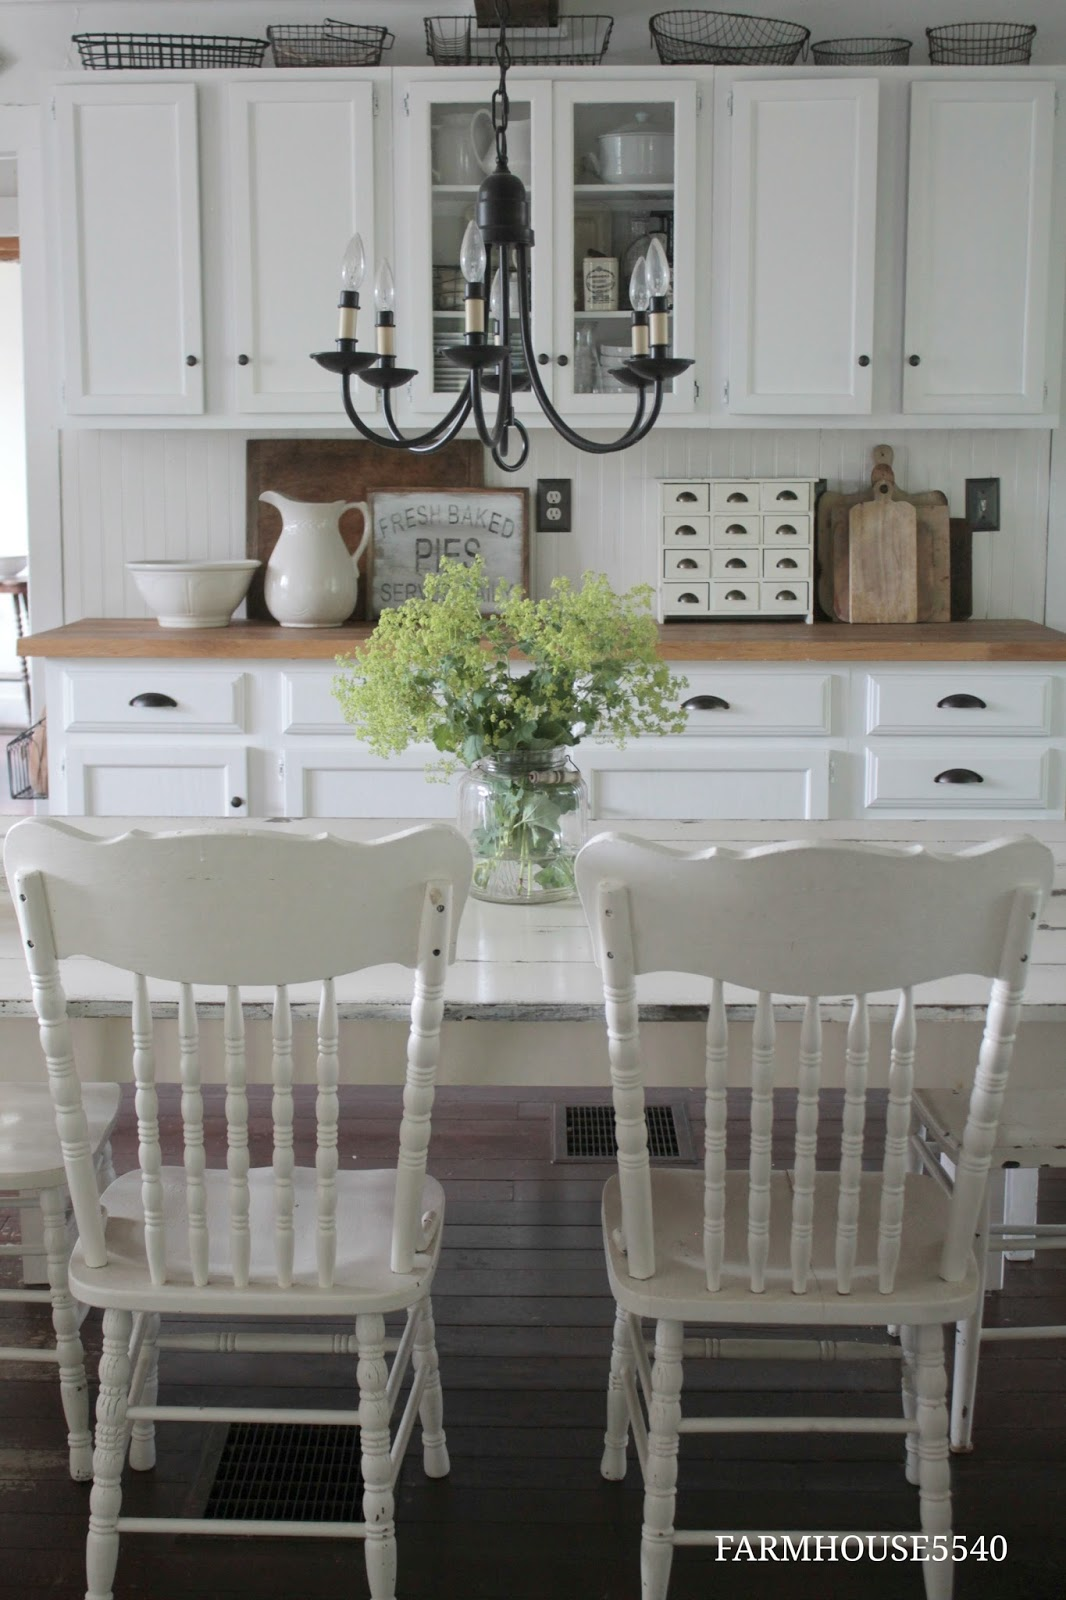 Applying 16 Bright Kitchen Paint Colors: FARMHOUSE 5540: Farmhouse Kitchen On A Summers Day